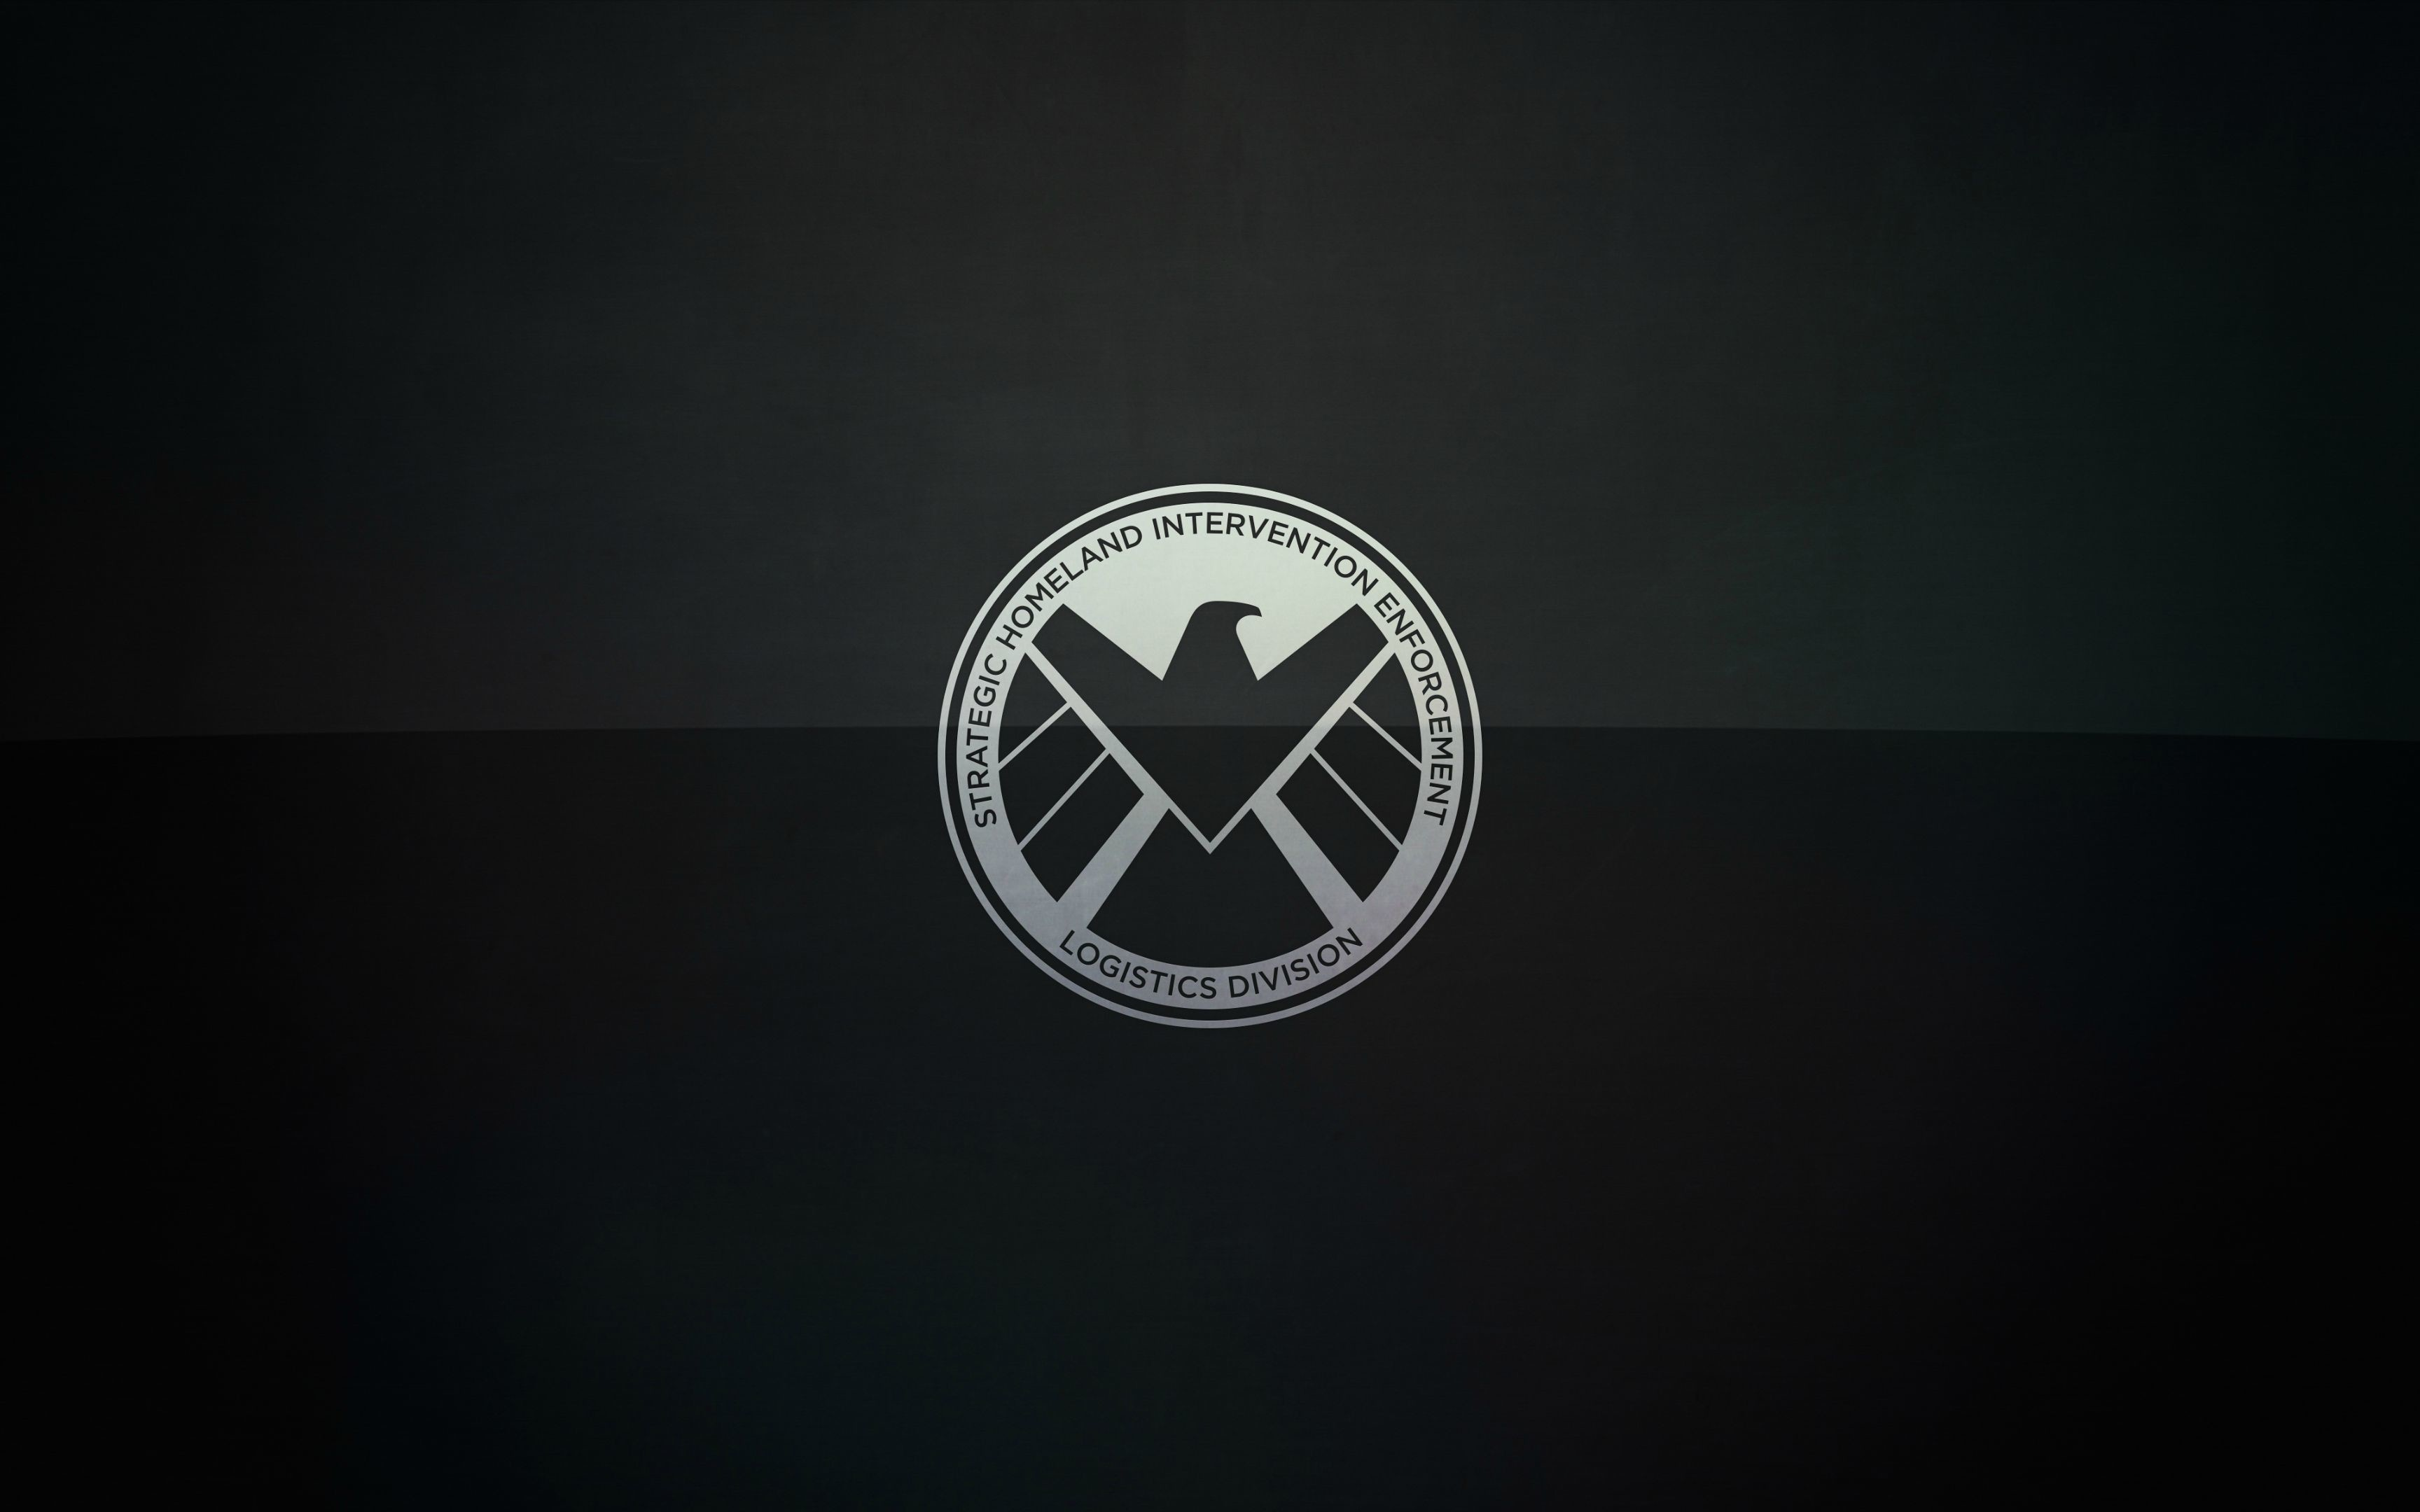 Could someone remove the color gradient from the background of this  wallpaper? Just take the logo and drop it on a solid dark gray/black  background.